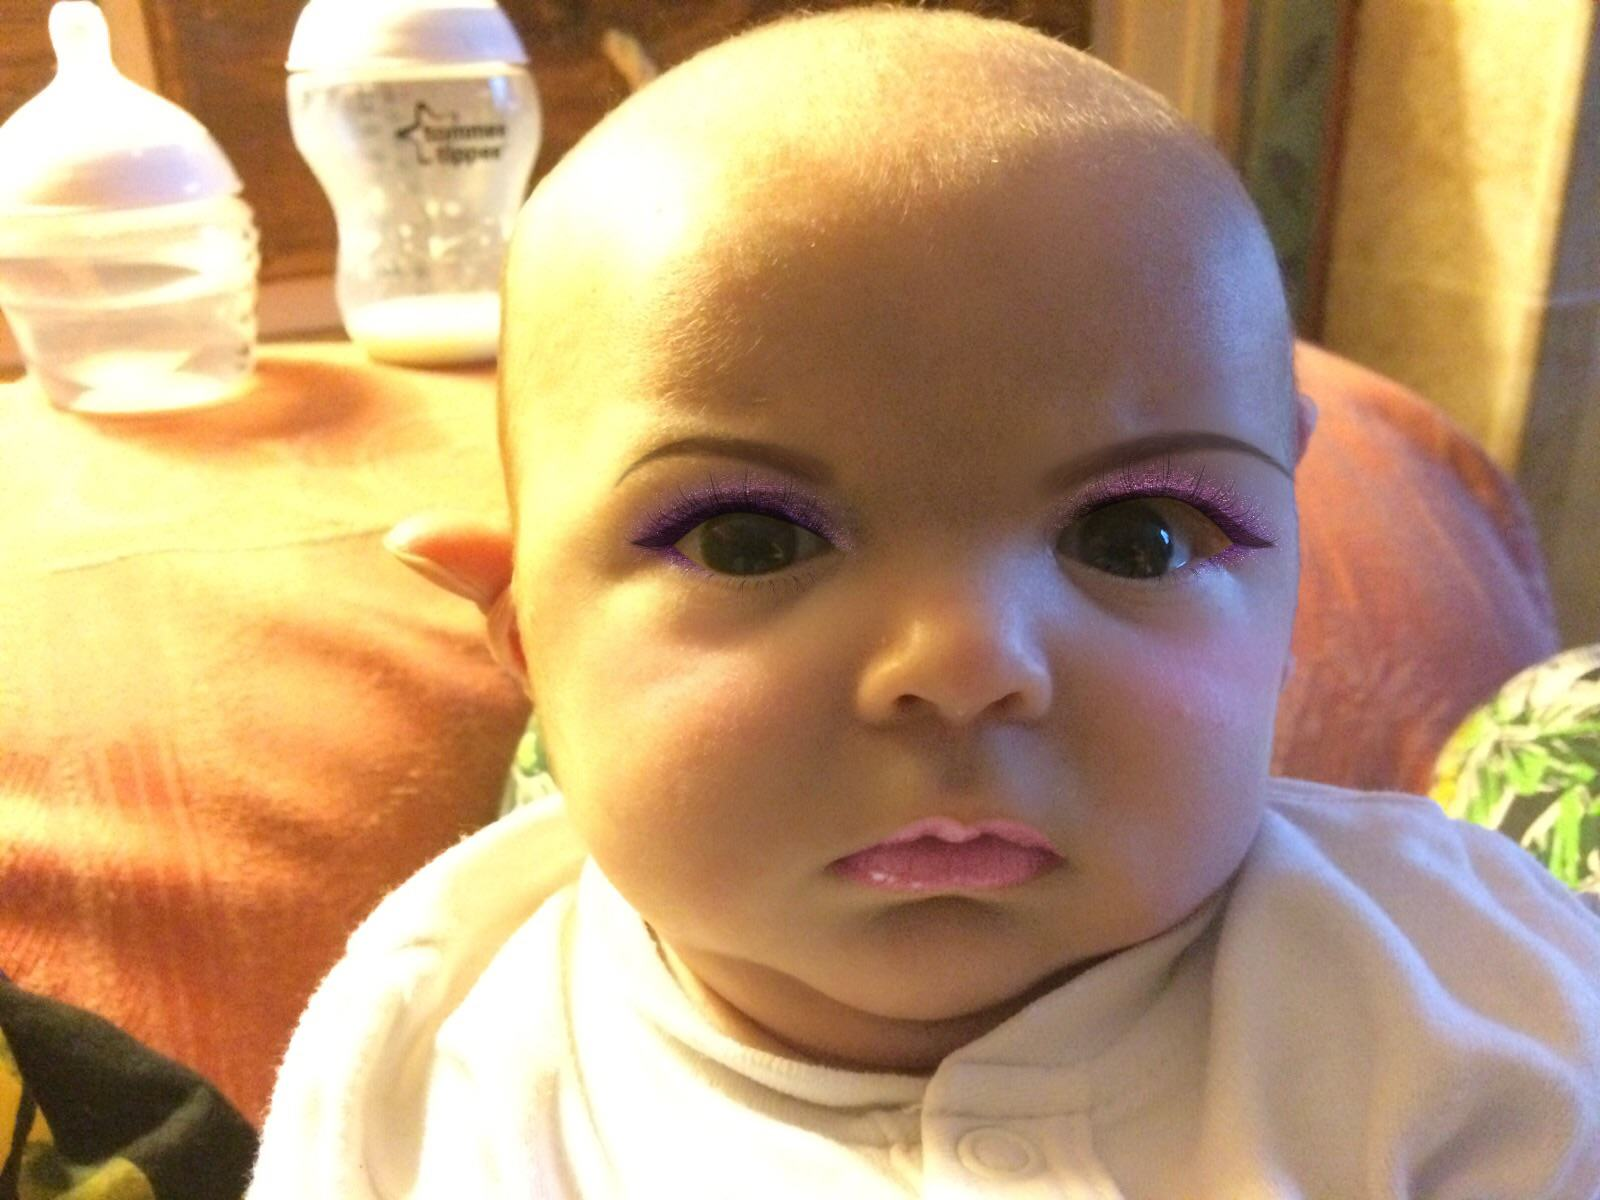 This Dad Used A Make Up App On His 7 Week Old Son 21